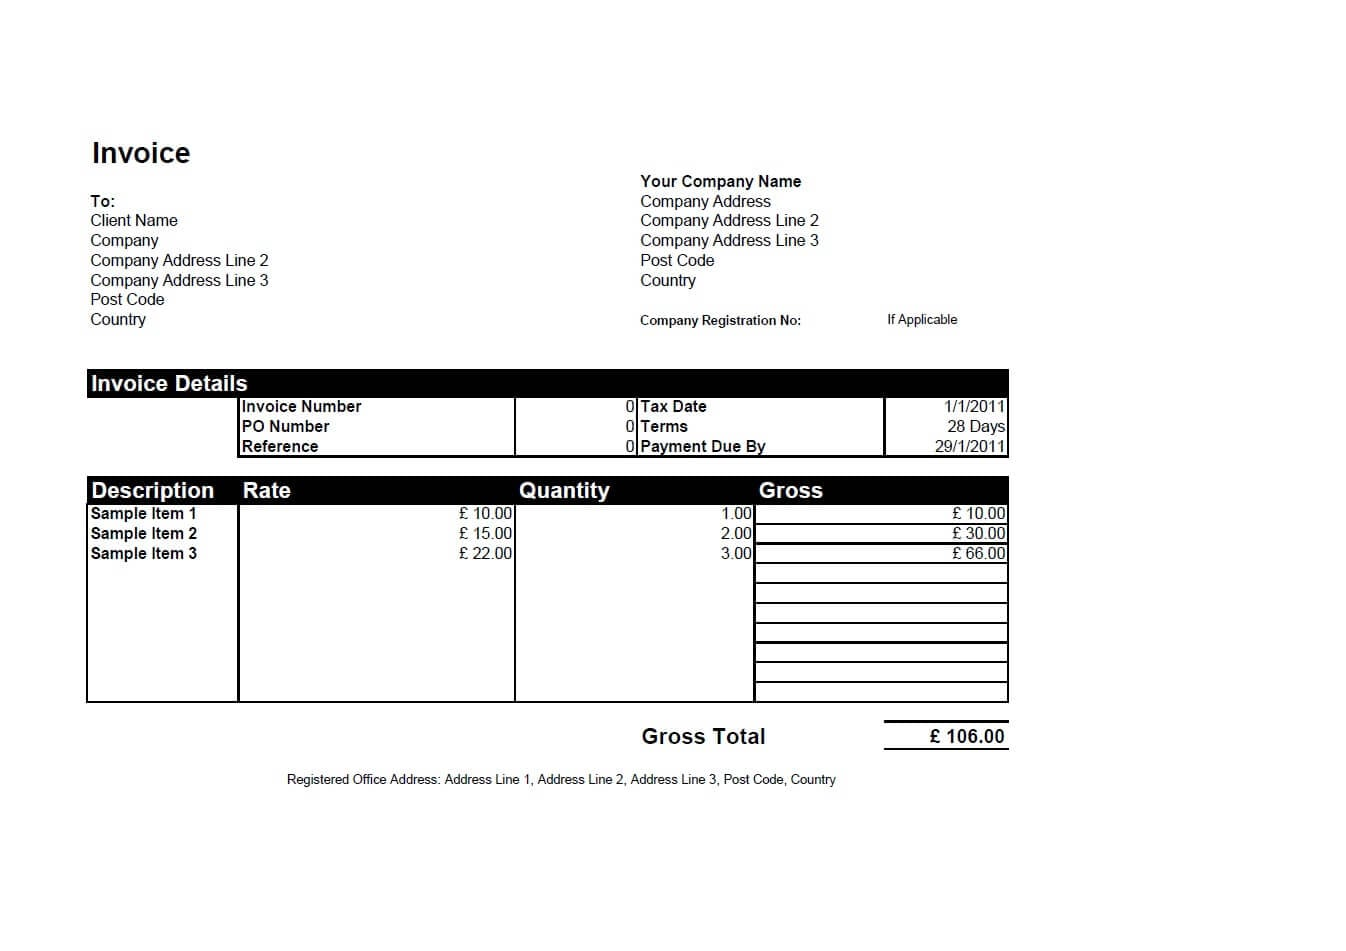 Quickbooks Invoice Sample Invoice Template Quickbooks Spreadsheet Templates for Busines Spreadsheet Templates for Busines Basic Invoice Template Free